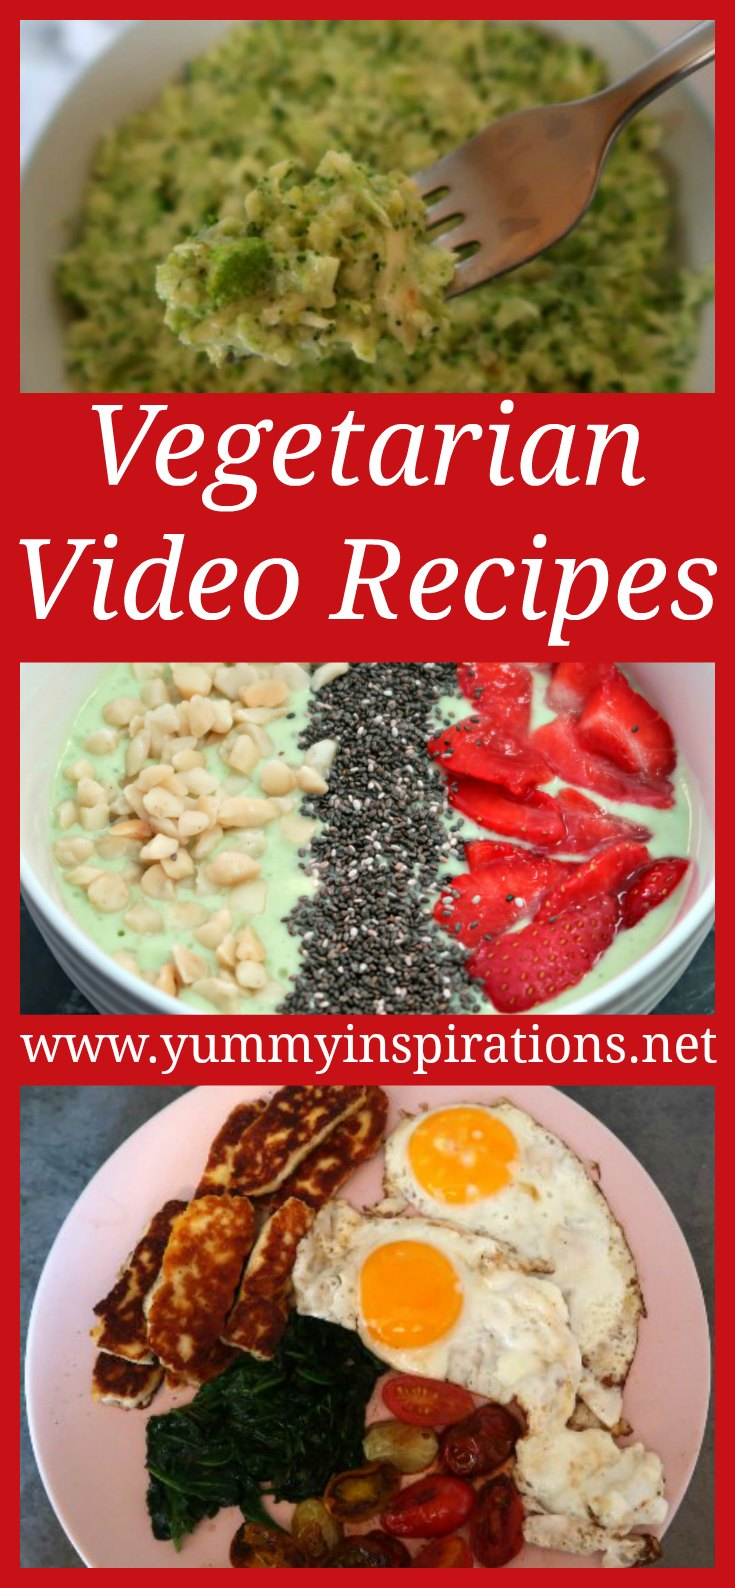 Vegetarian Video Recipes - A collection of vegetarian and vegan cooking videos to watch for easy & healthy recipes for every meal - breakfast, lunch, dinner, snacks and dessert.